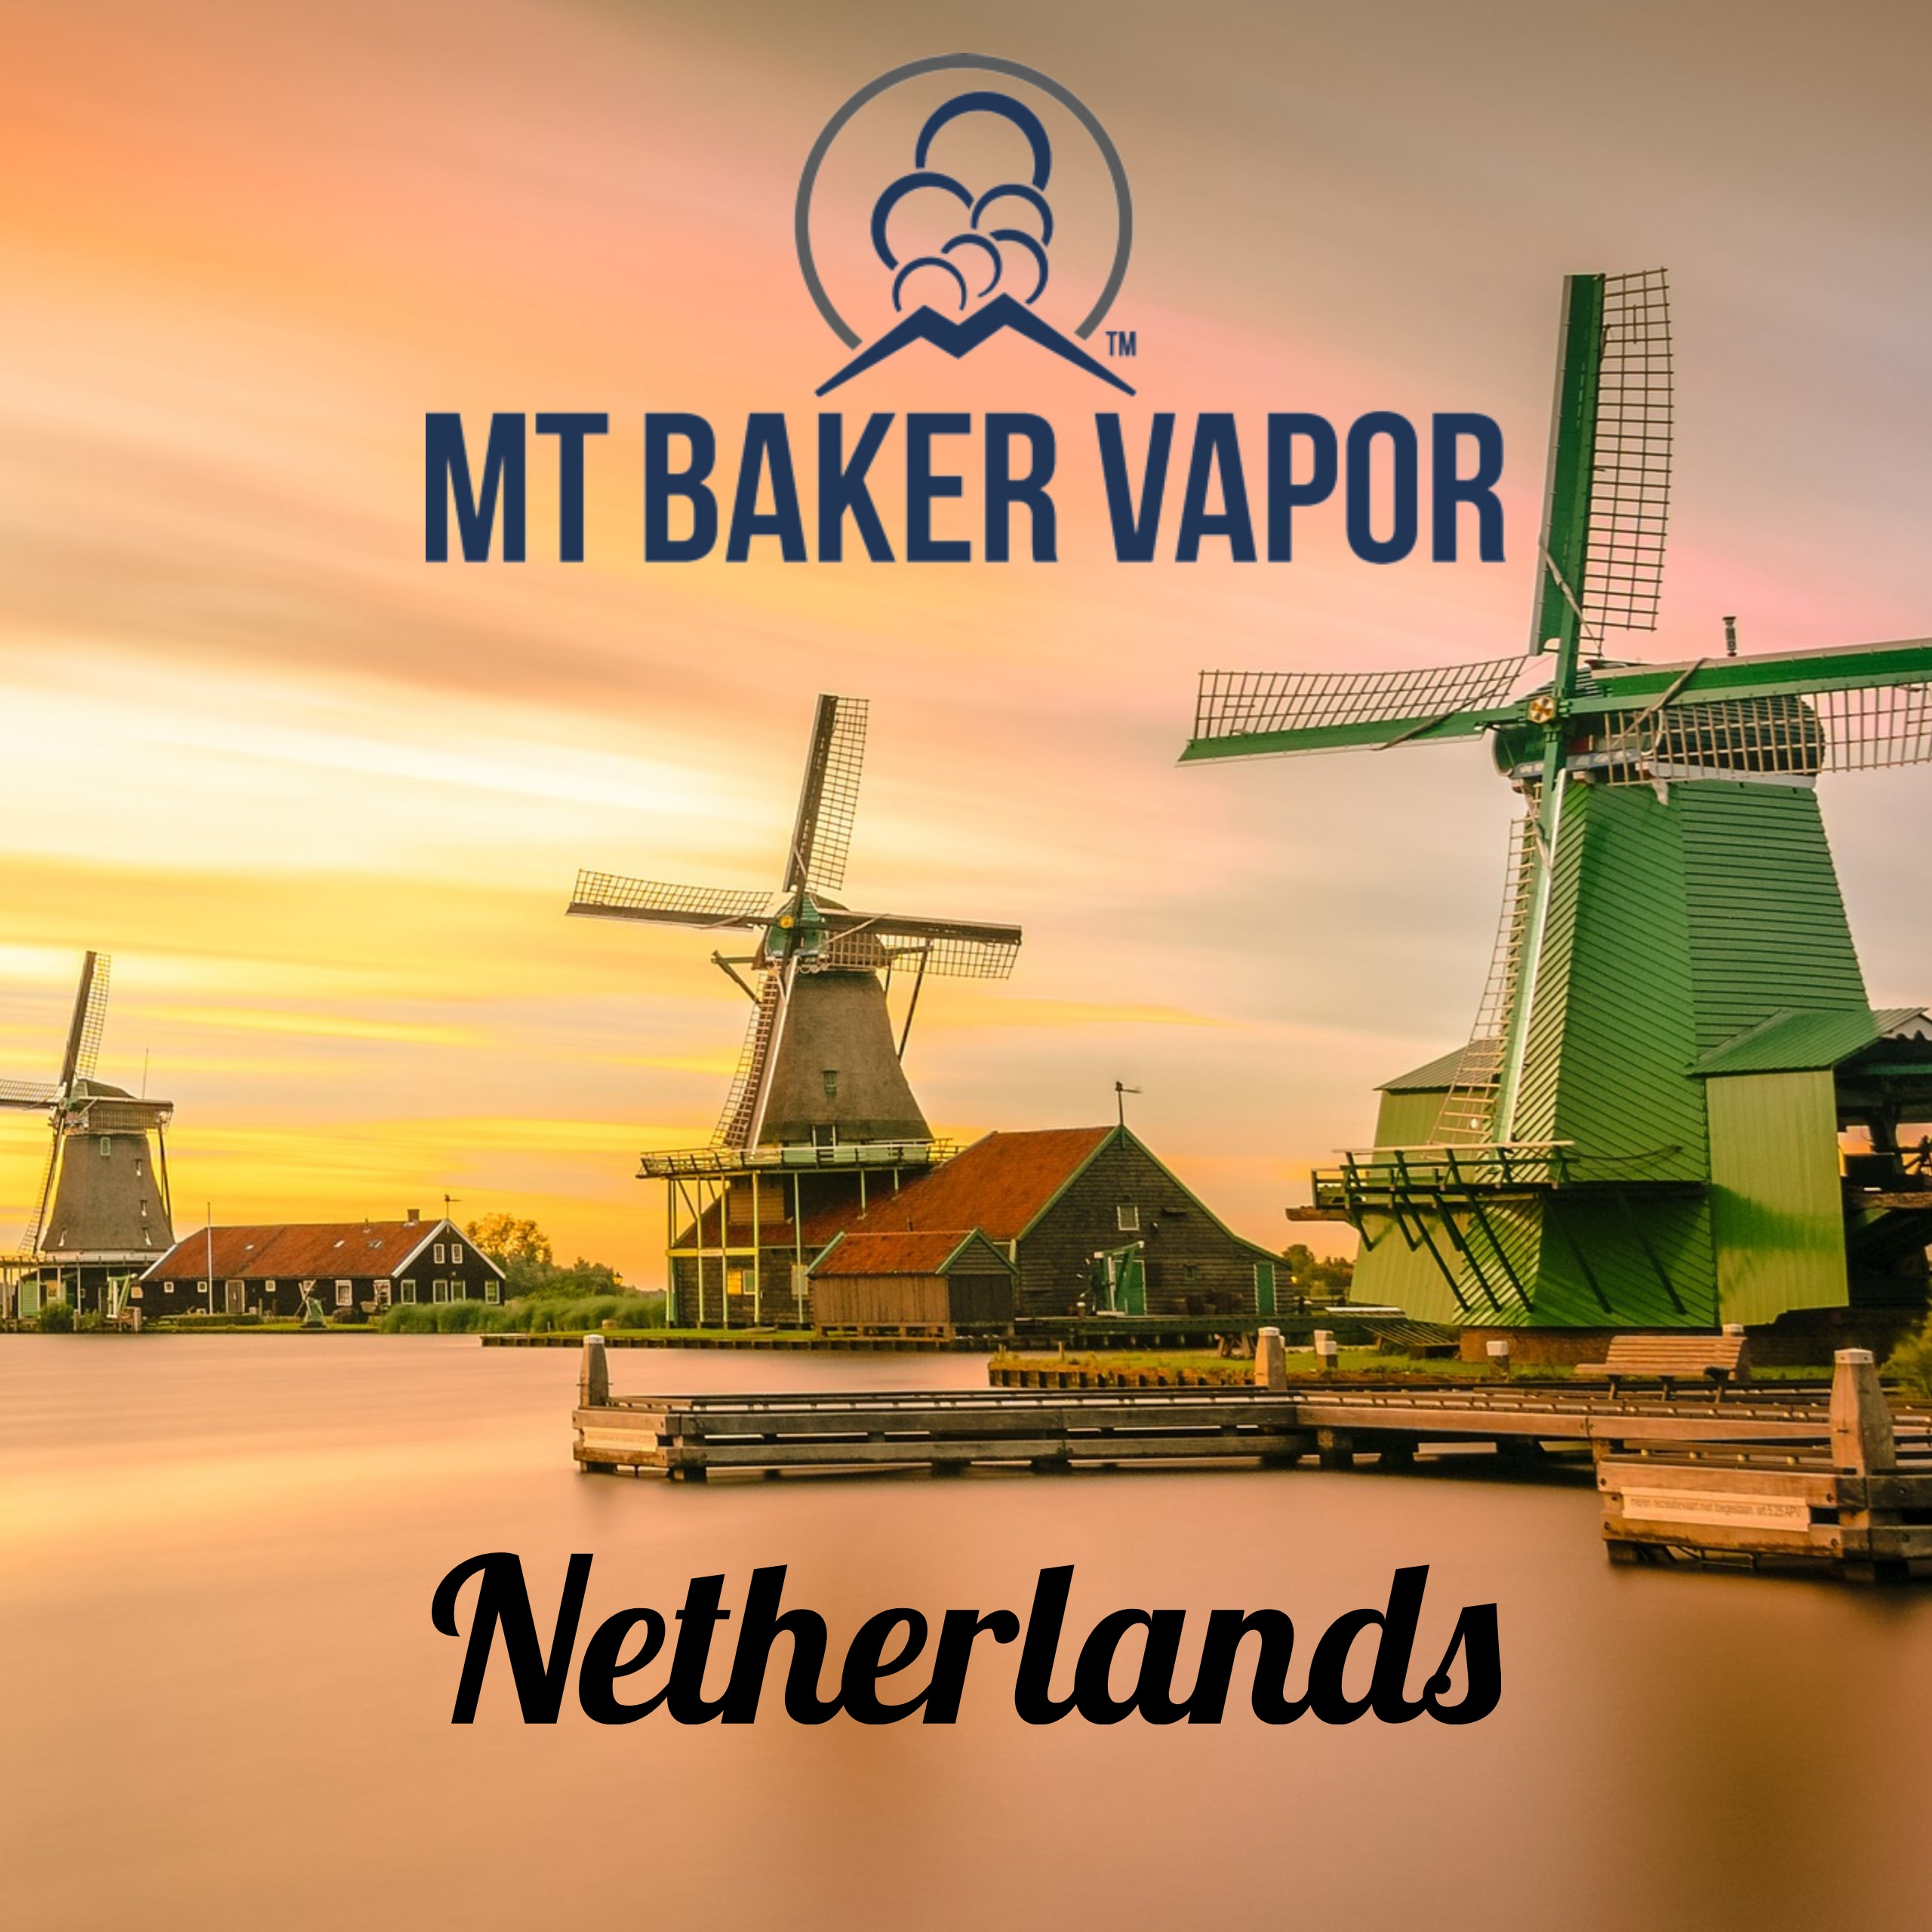 Mt Baker Vapor in the Netherlands. How to Get Your E-Juice in Holland